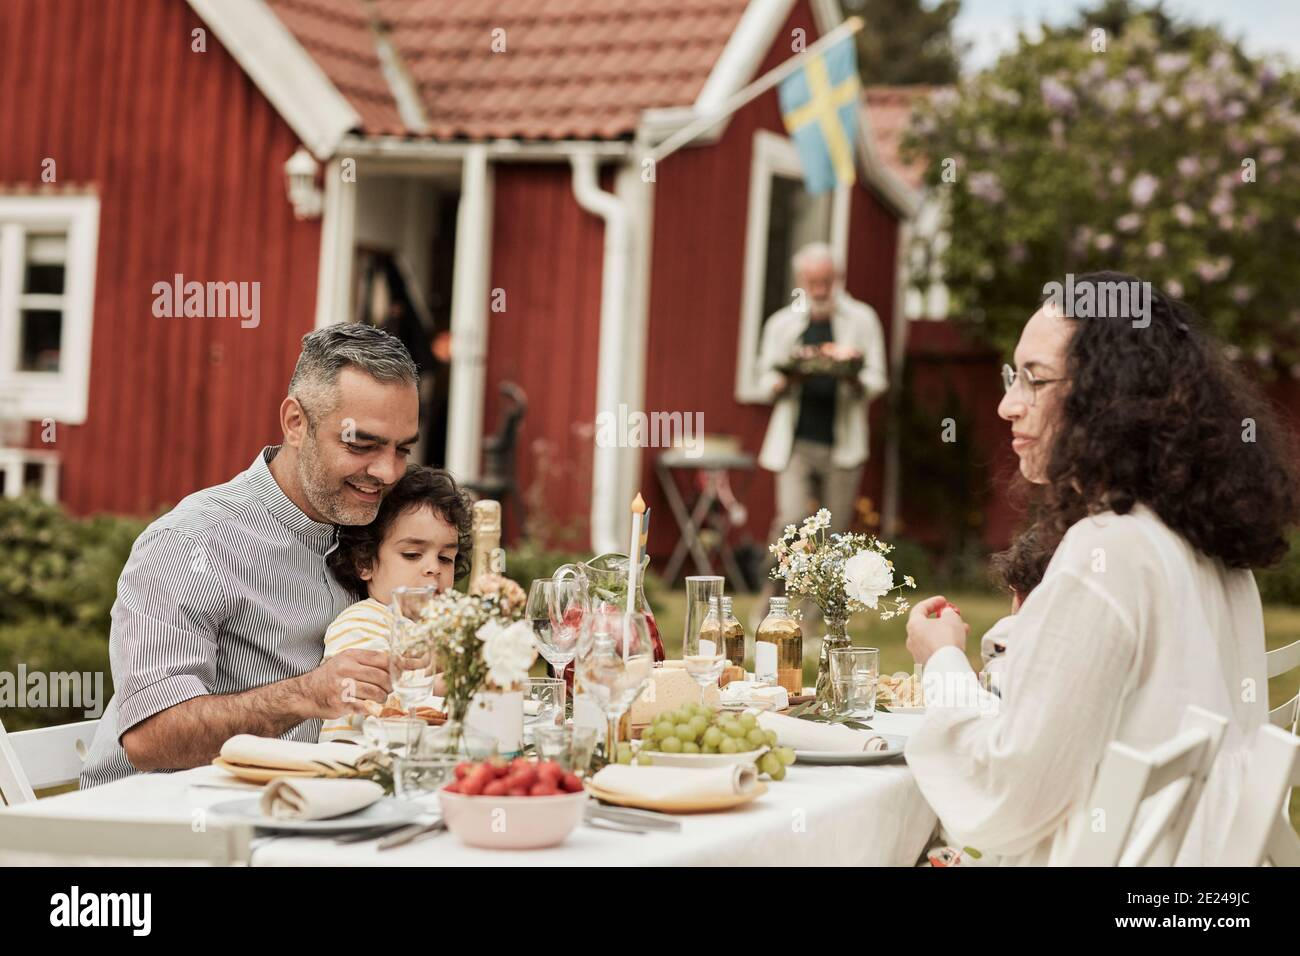 Family having meal in garden Banque D'Images